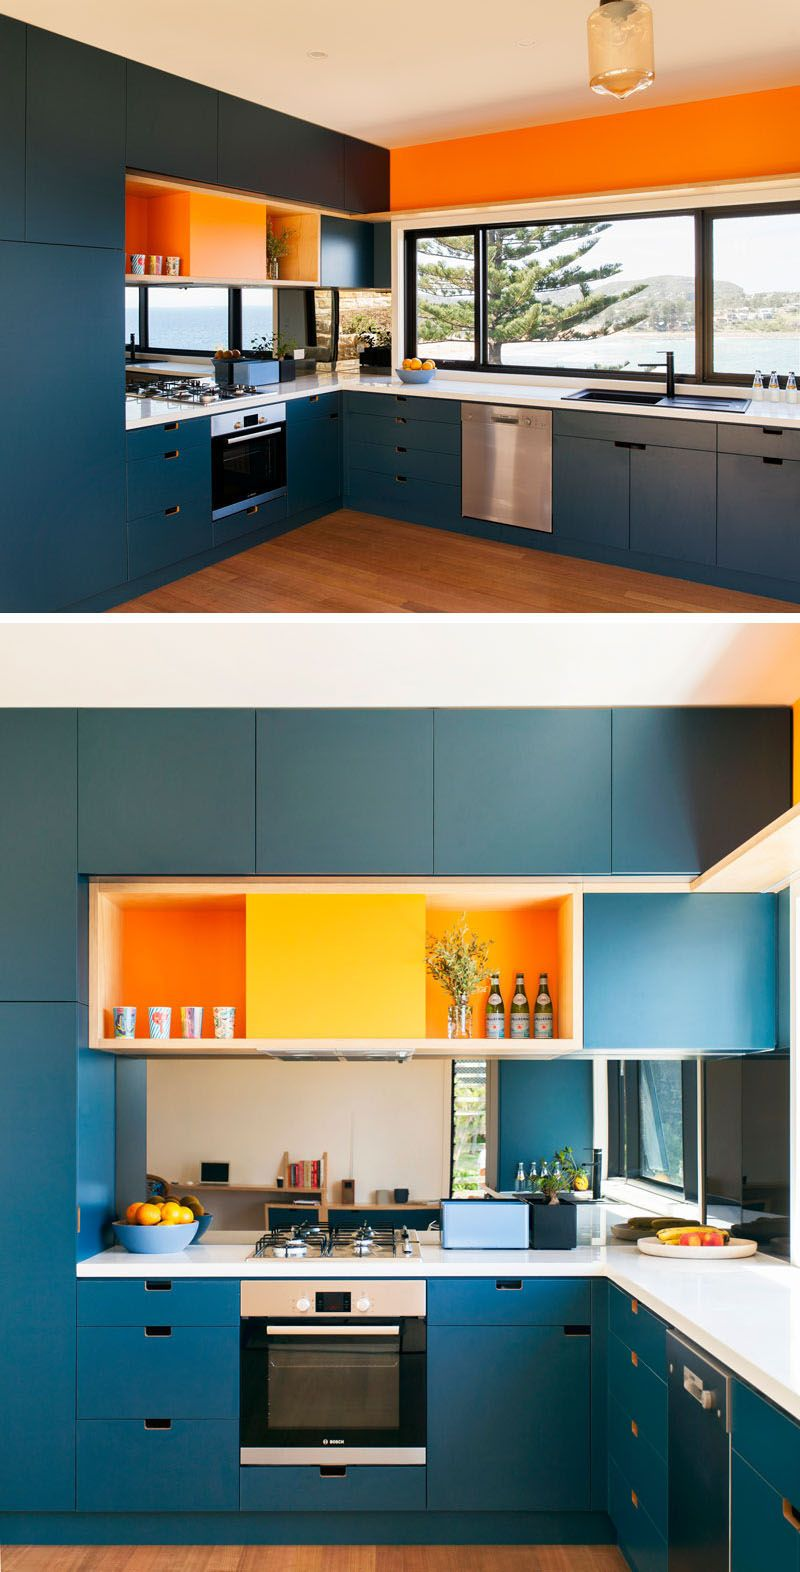 Looking For Blue Cabinets Your Kitchen Makeover Check Out These Cabinet Ideas Inspiration Of New Decor